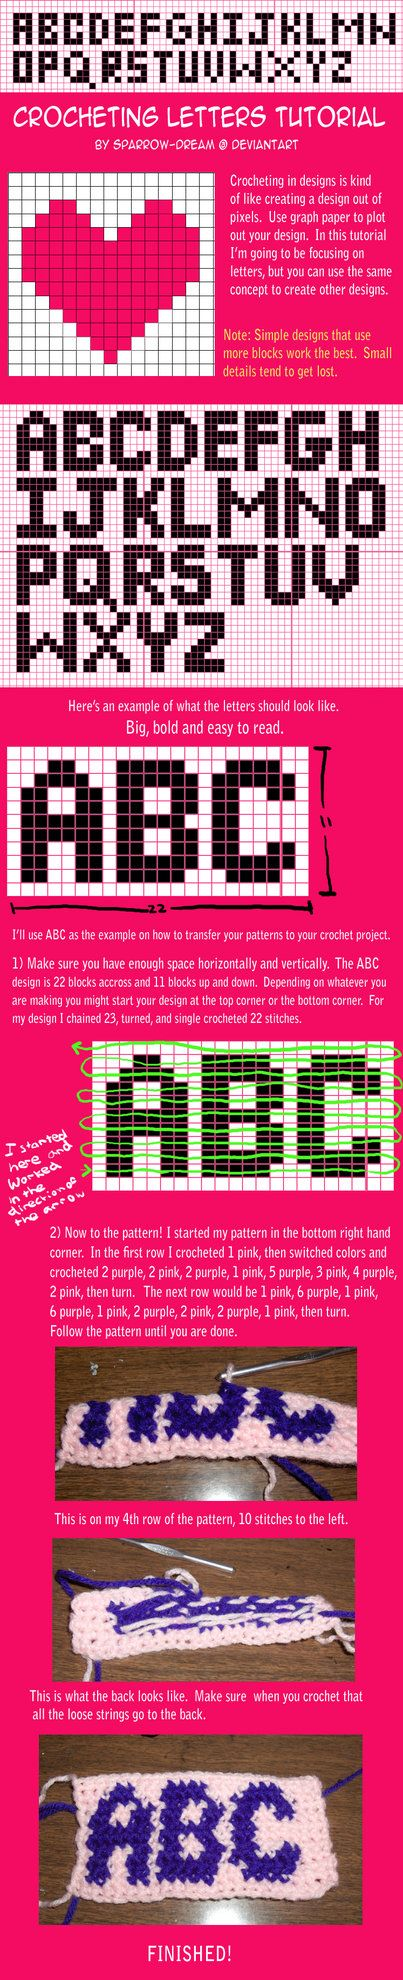 Crocheting Letters Tutorial by ~Sparrow-dream on deviantART (for my crochet pupils)